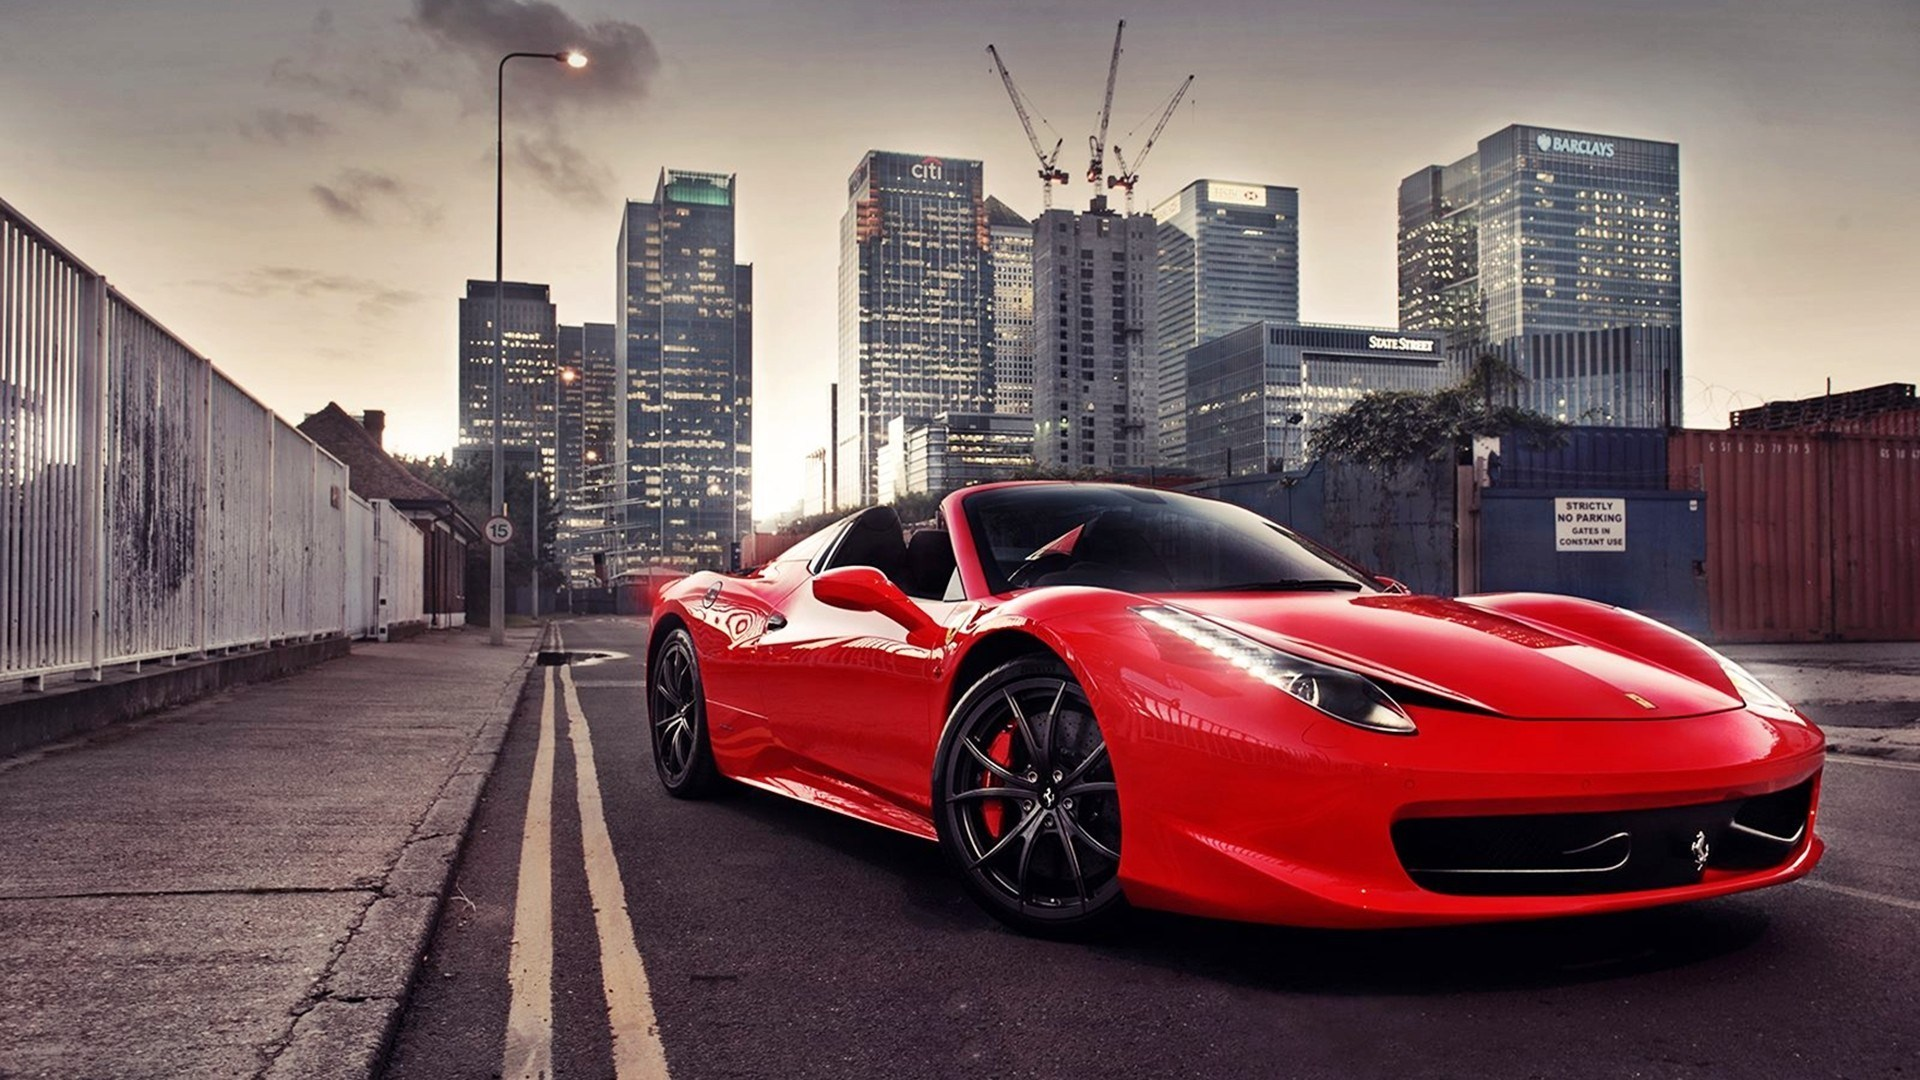 Red Ferrari 458 Italia Street Photo